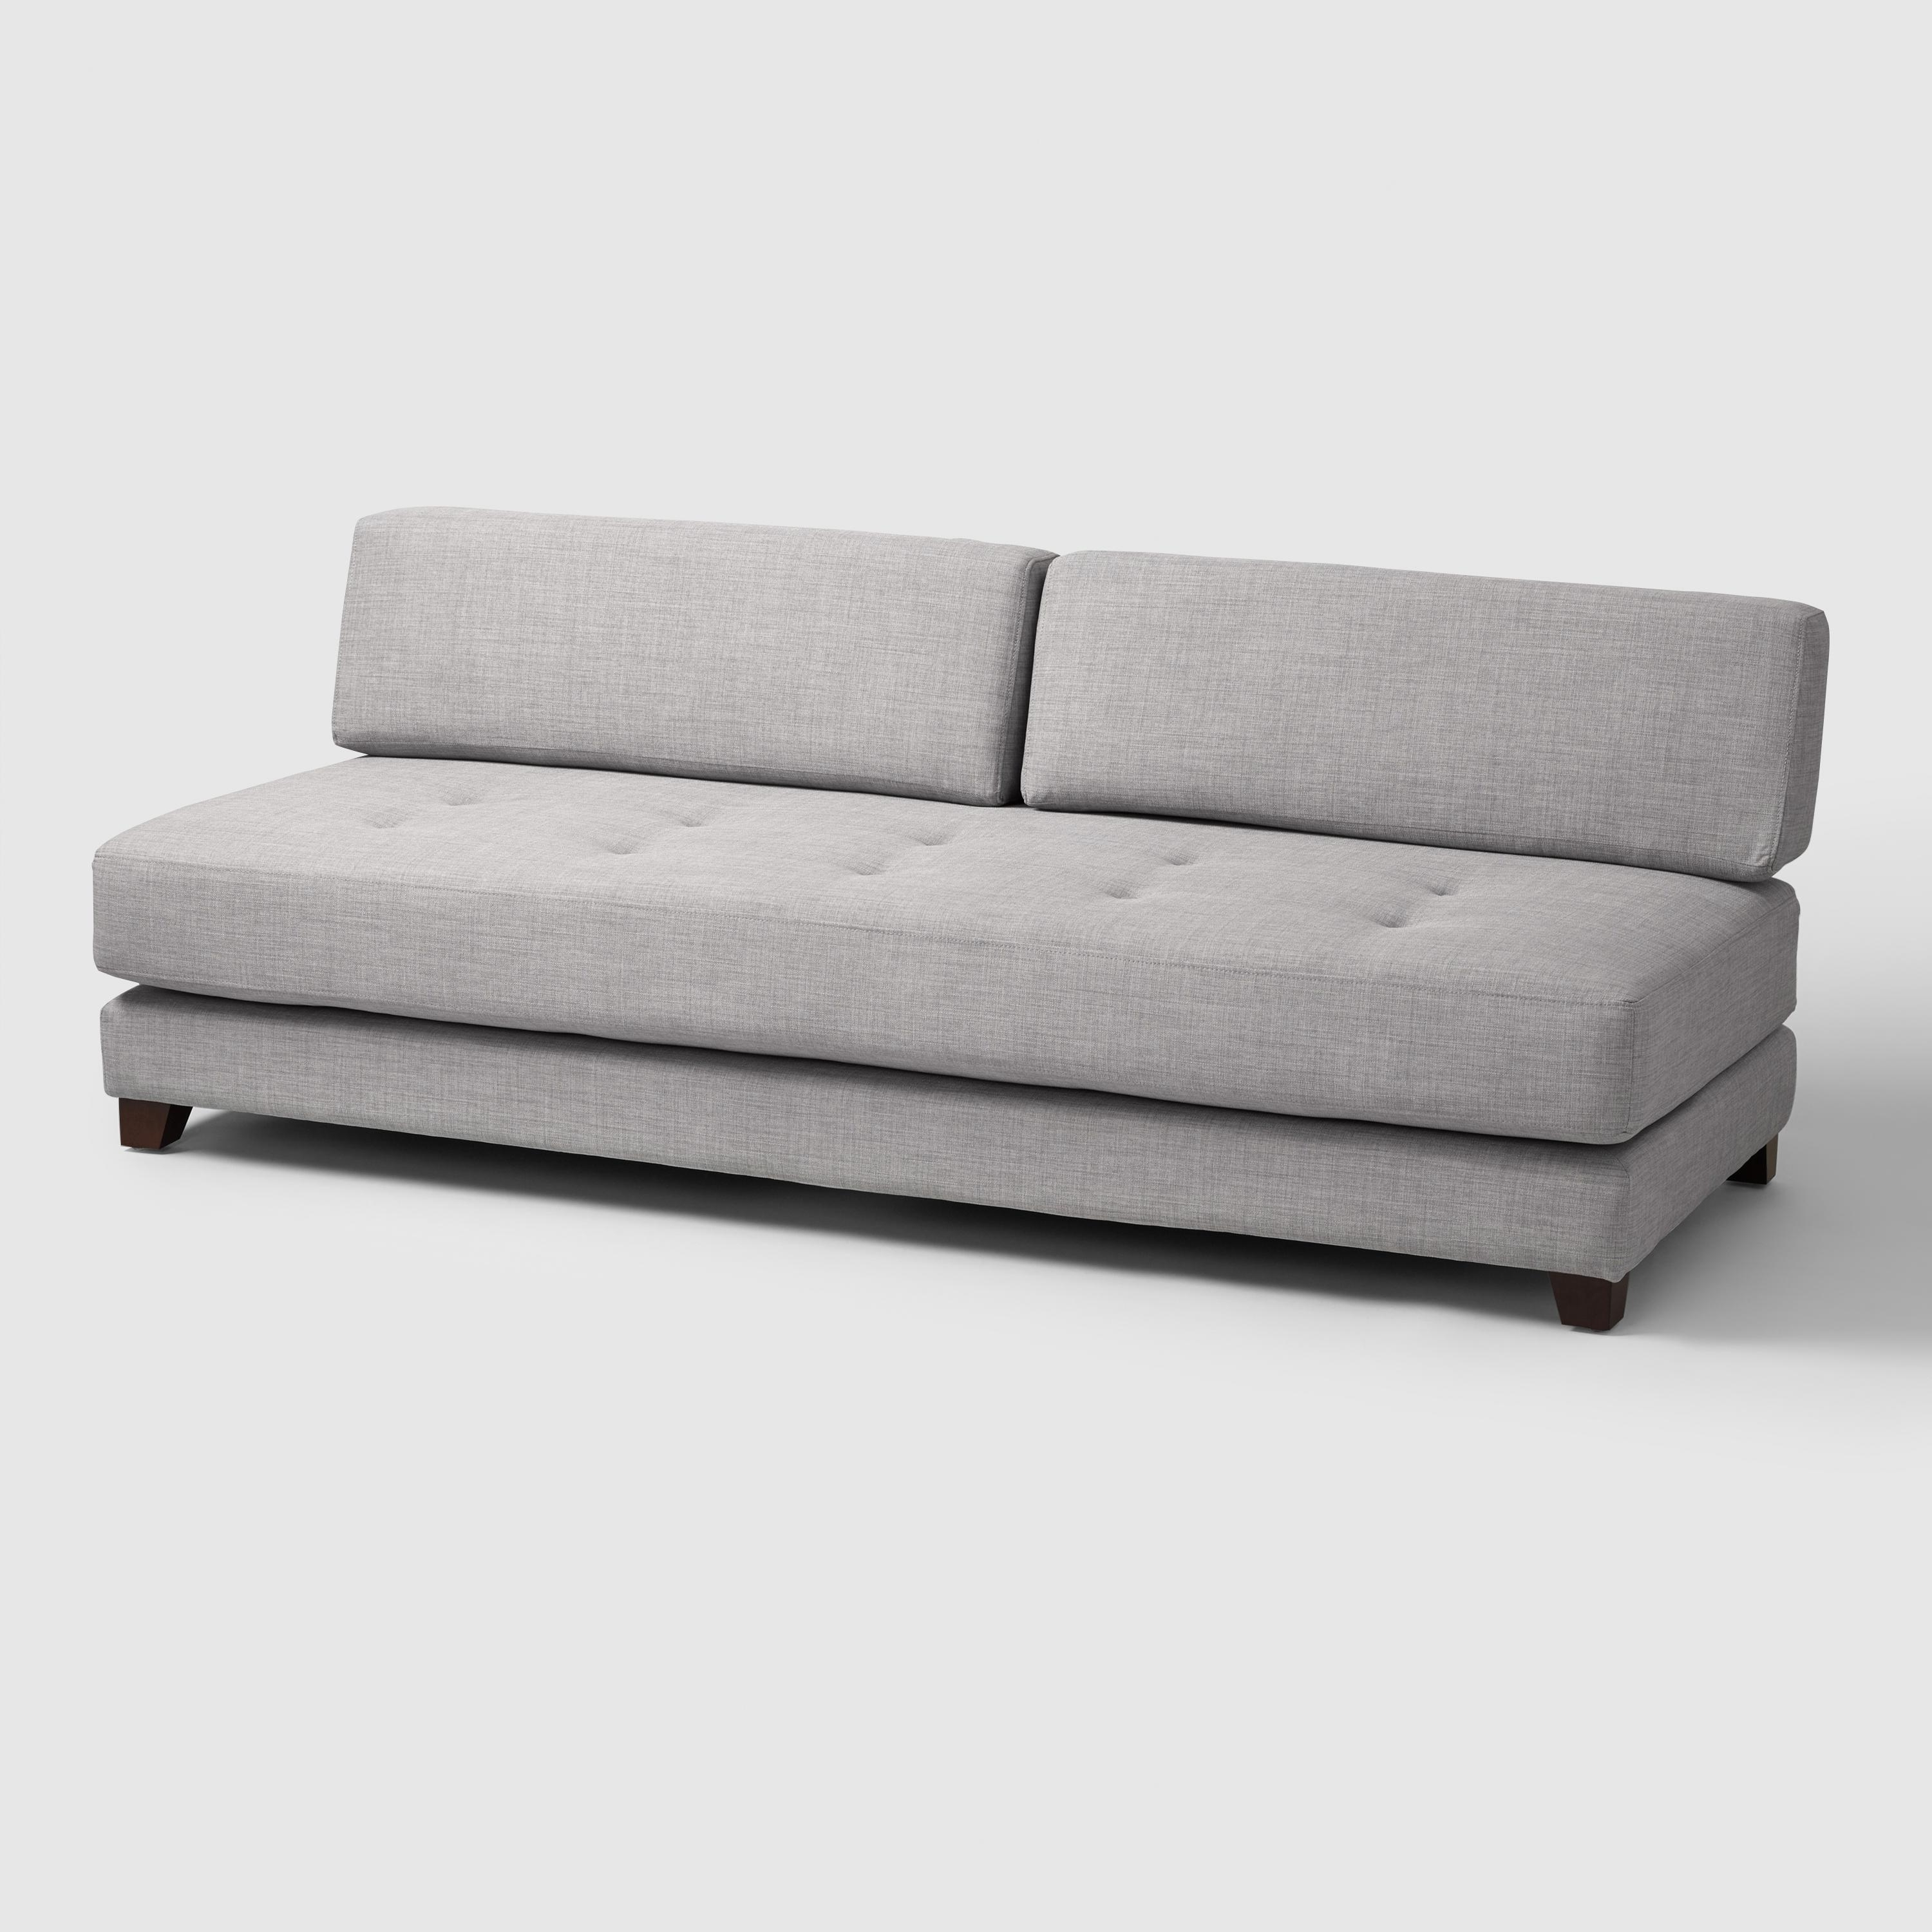 Twin Bed Tufted Pillow Back Lounge Reversible Corner Chaise Sofa With Regard To Best And Newest Daybed Chaises (View 15 of 15)